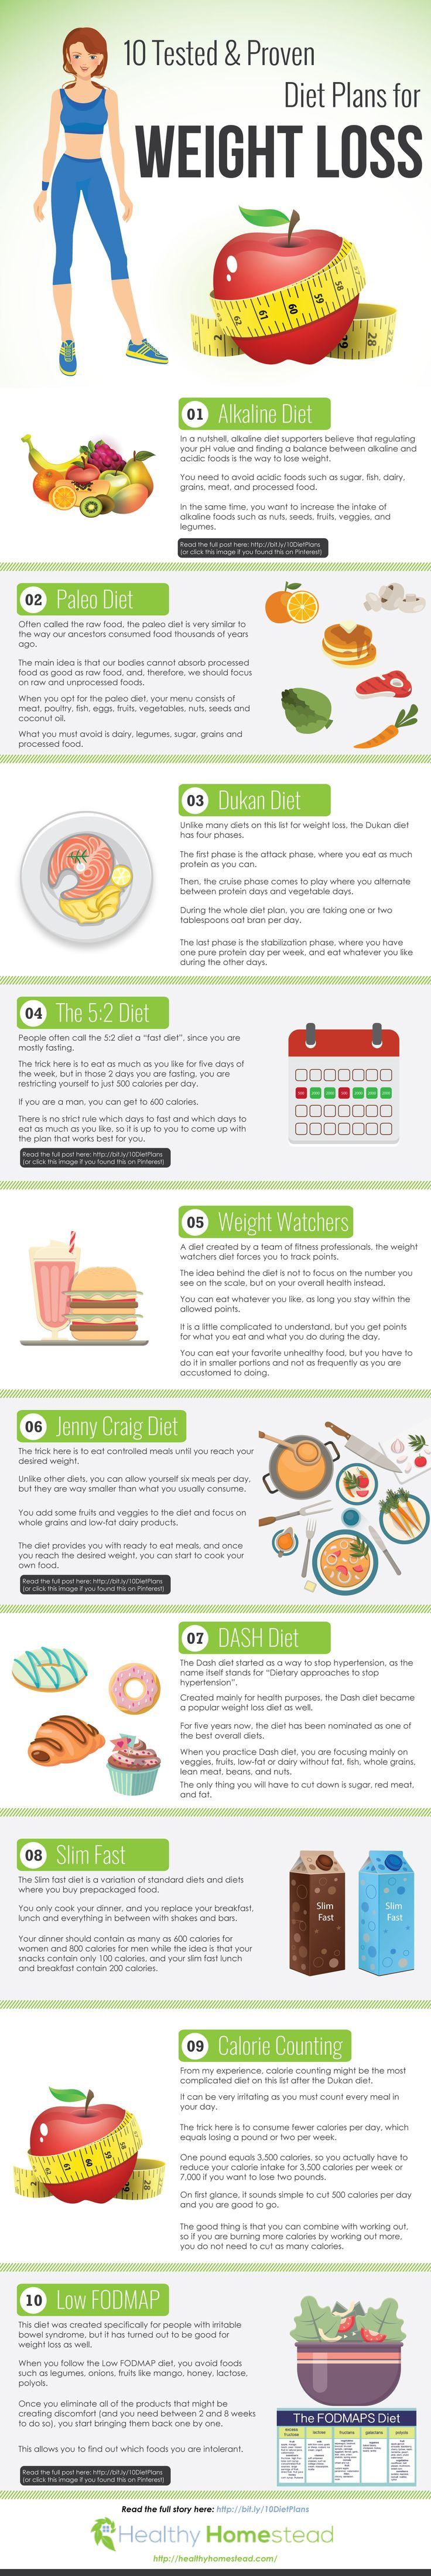 Ultimate fat loss nj cost per pound - 10 Tested Proven Diet Plans For Weight Loss